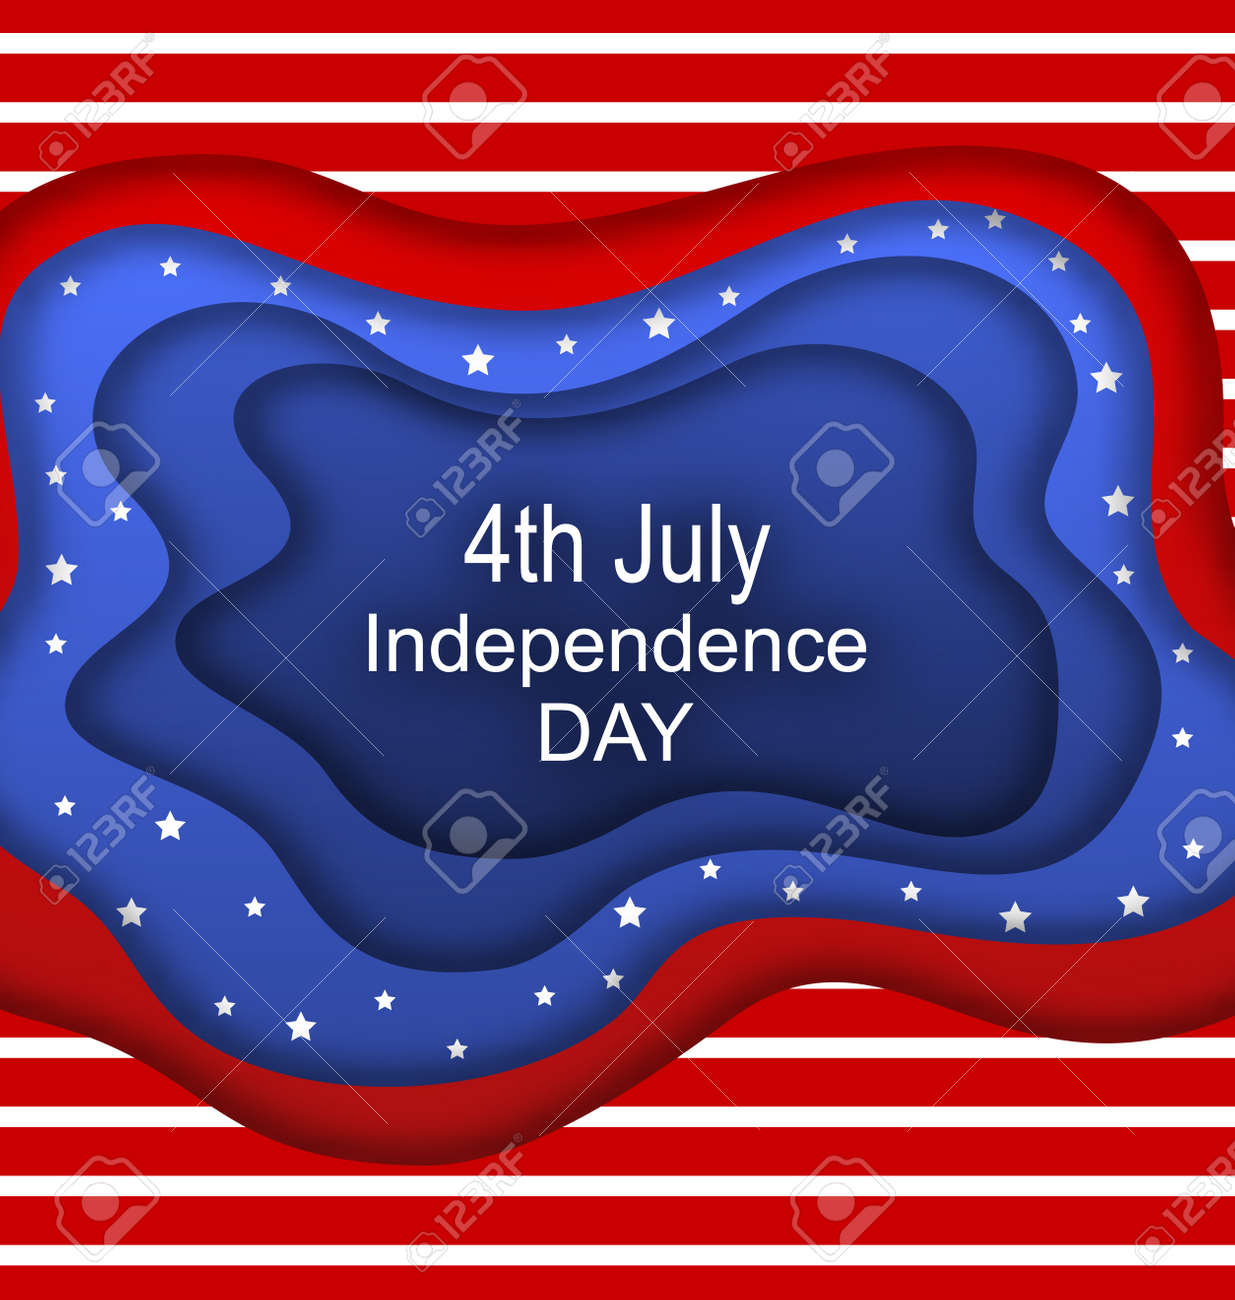 invitation for fourth of july independence day of the usa cut